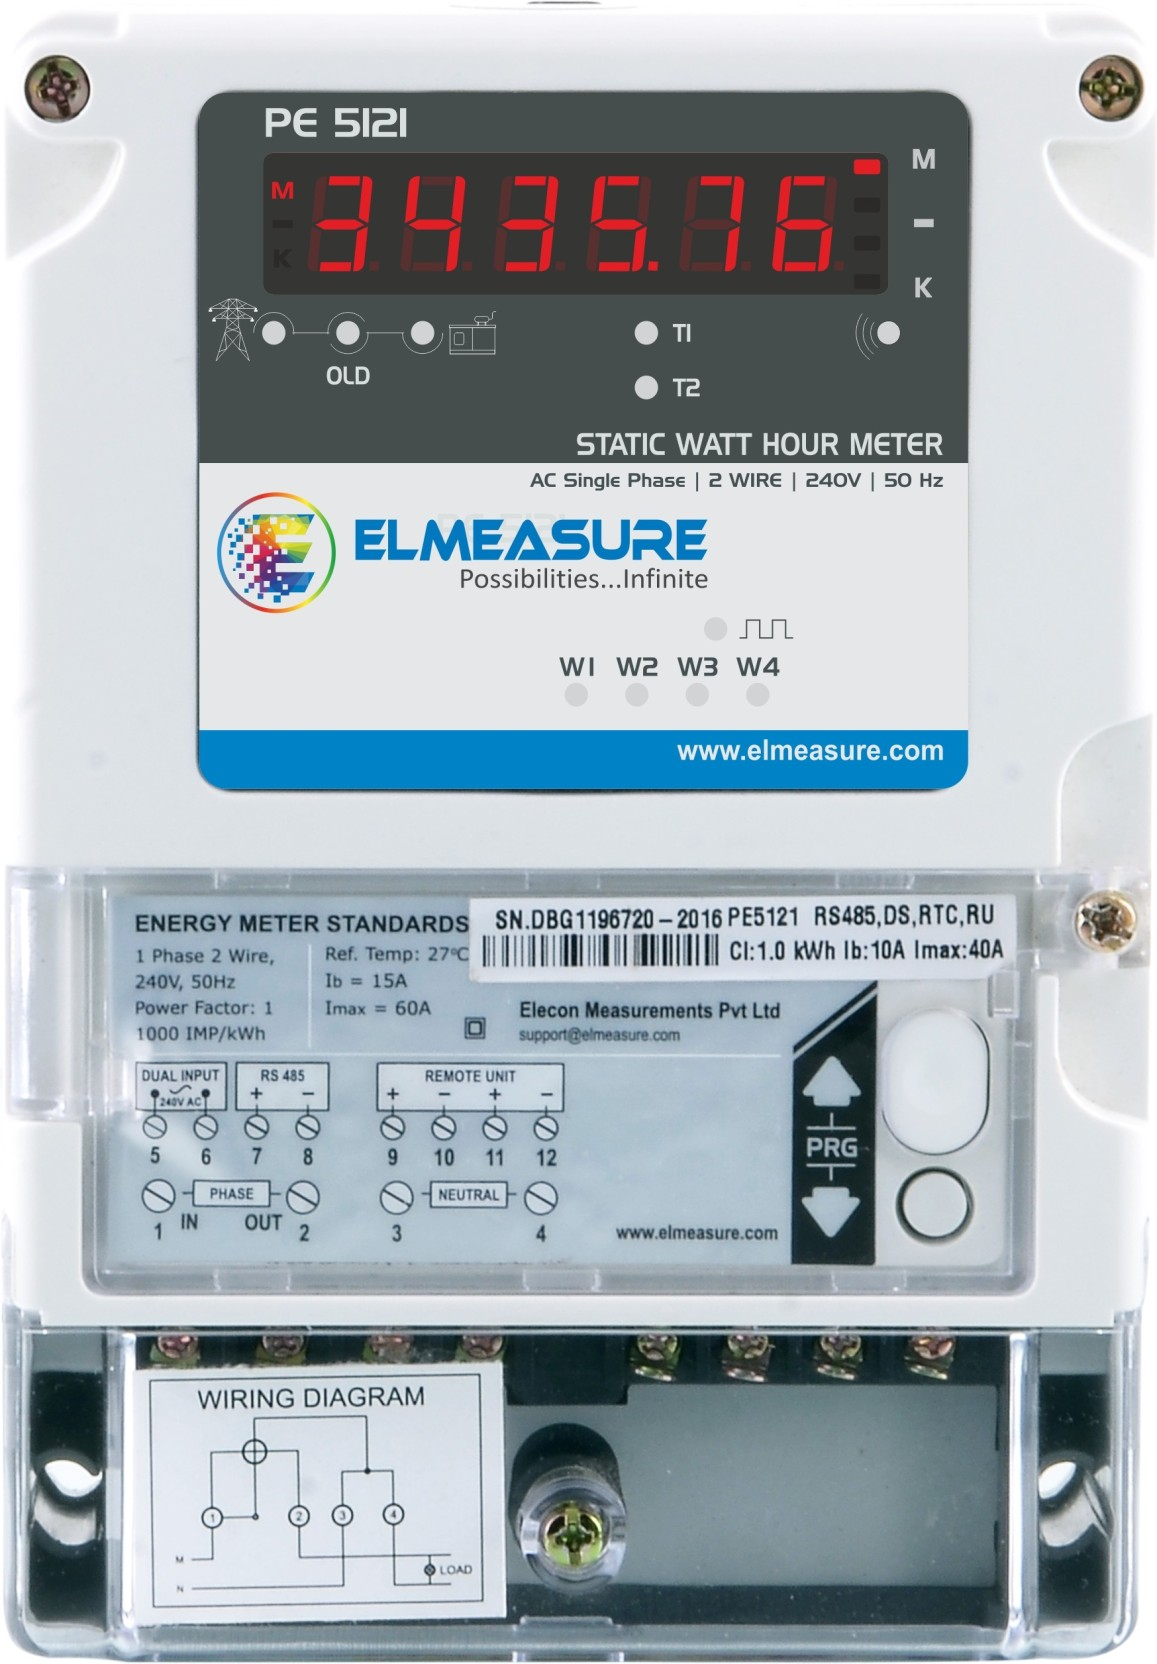 Elmeasure Pe 5120 Rsw Non Magnetic Engineers Precision Level Price Rs 485 2 Wire Wiring Diagram Add To Cart